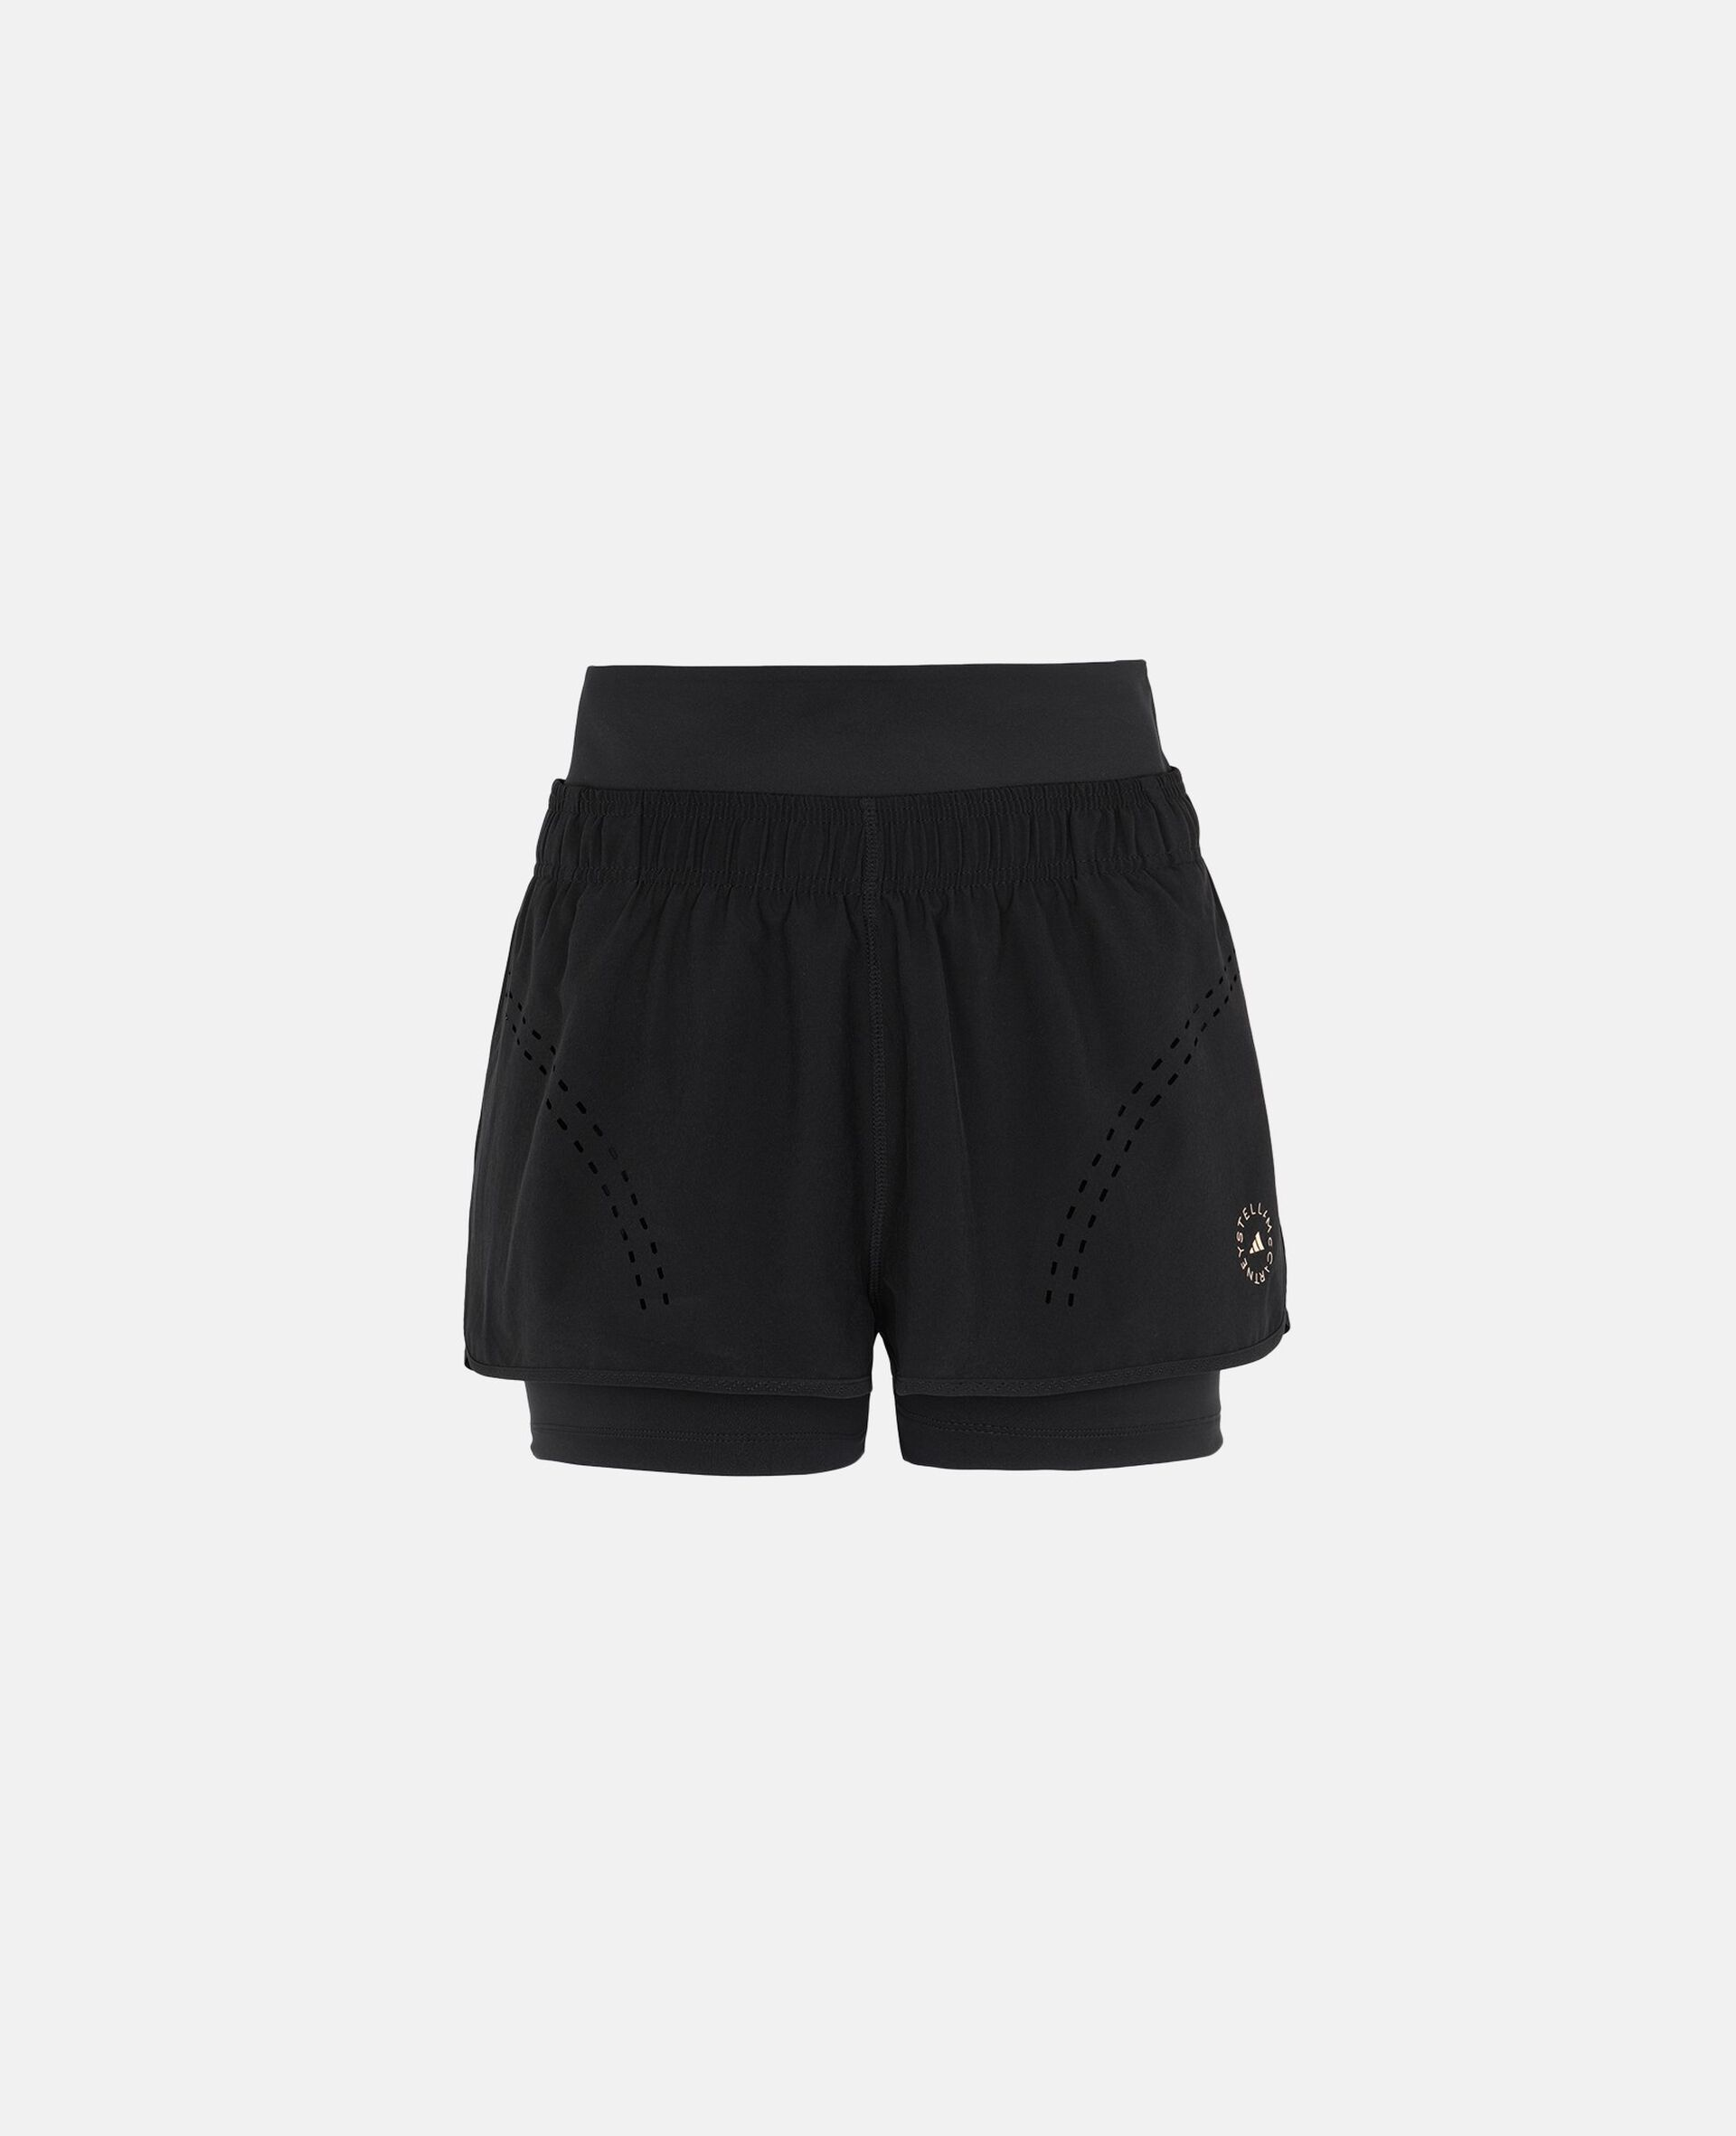 Black TruePurpose Training Short-Black-large image number 0